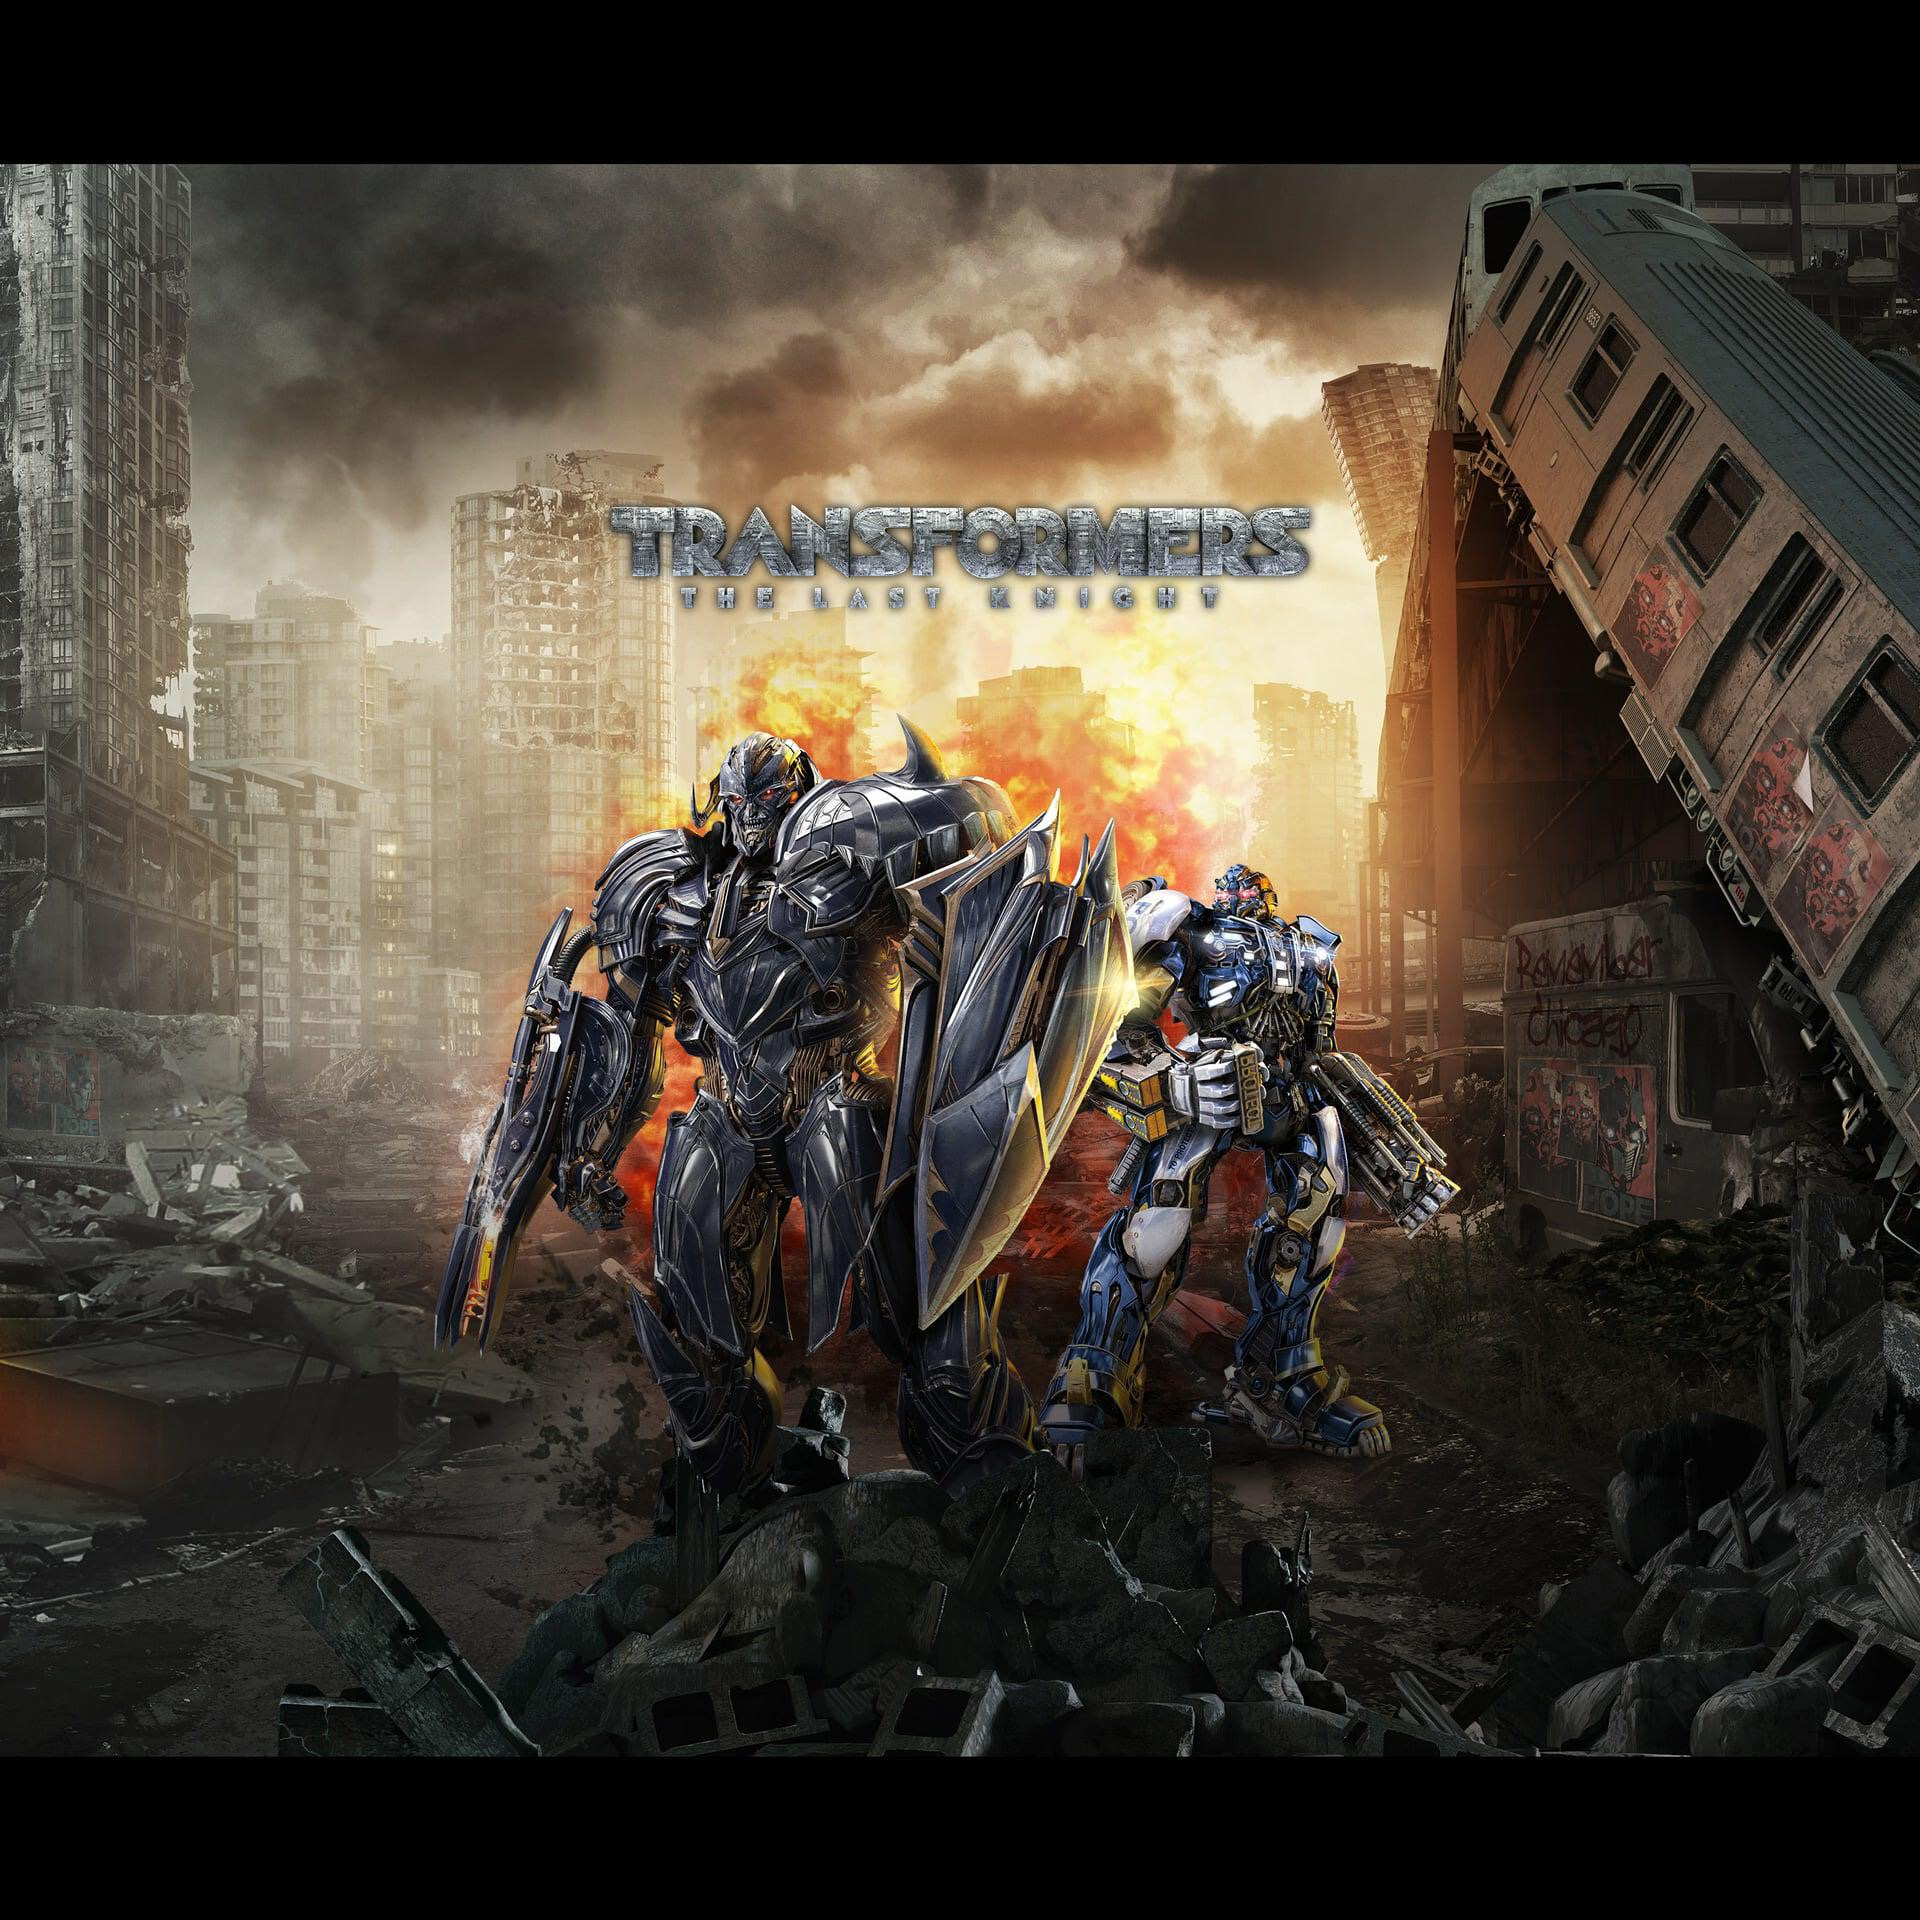 download transformers 5 the game, 1 2 3 4 5.